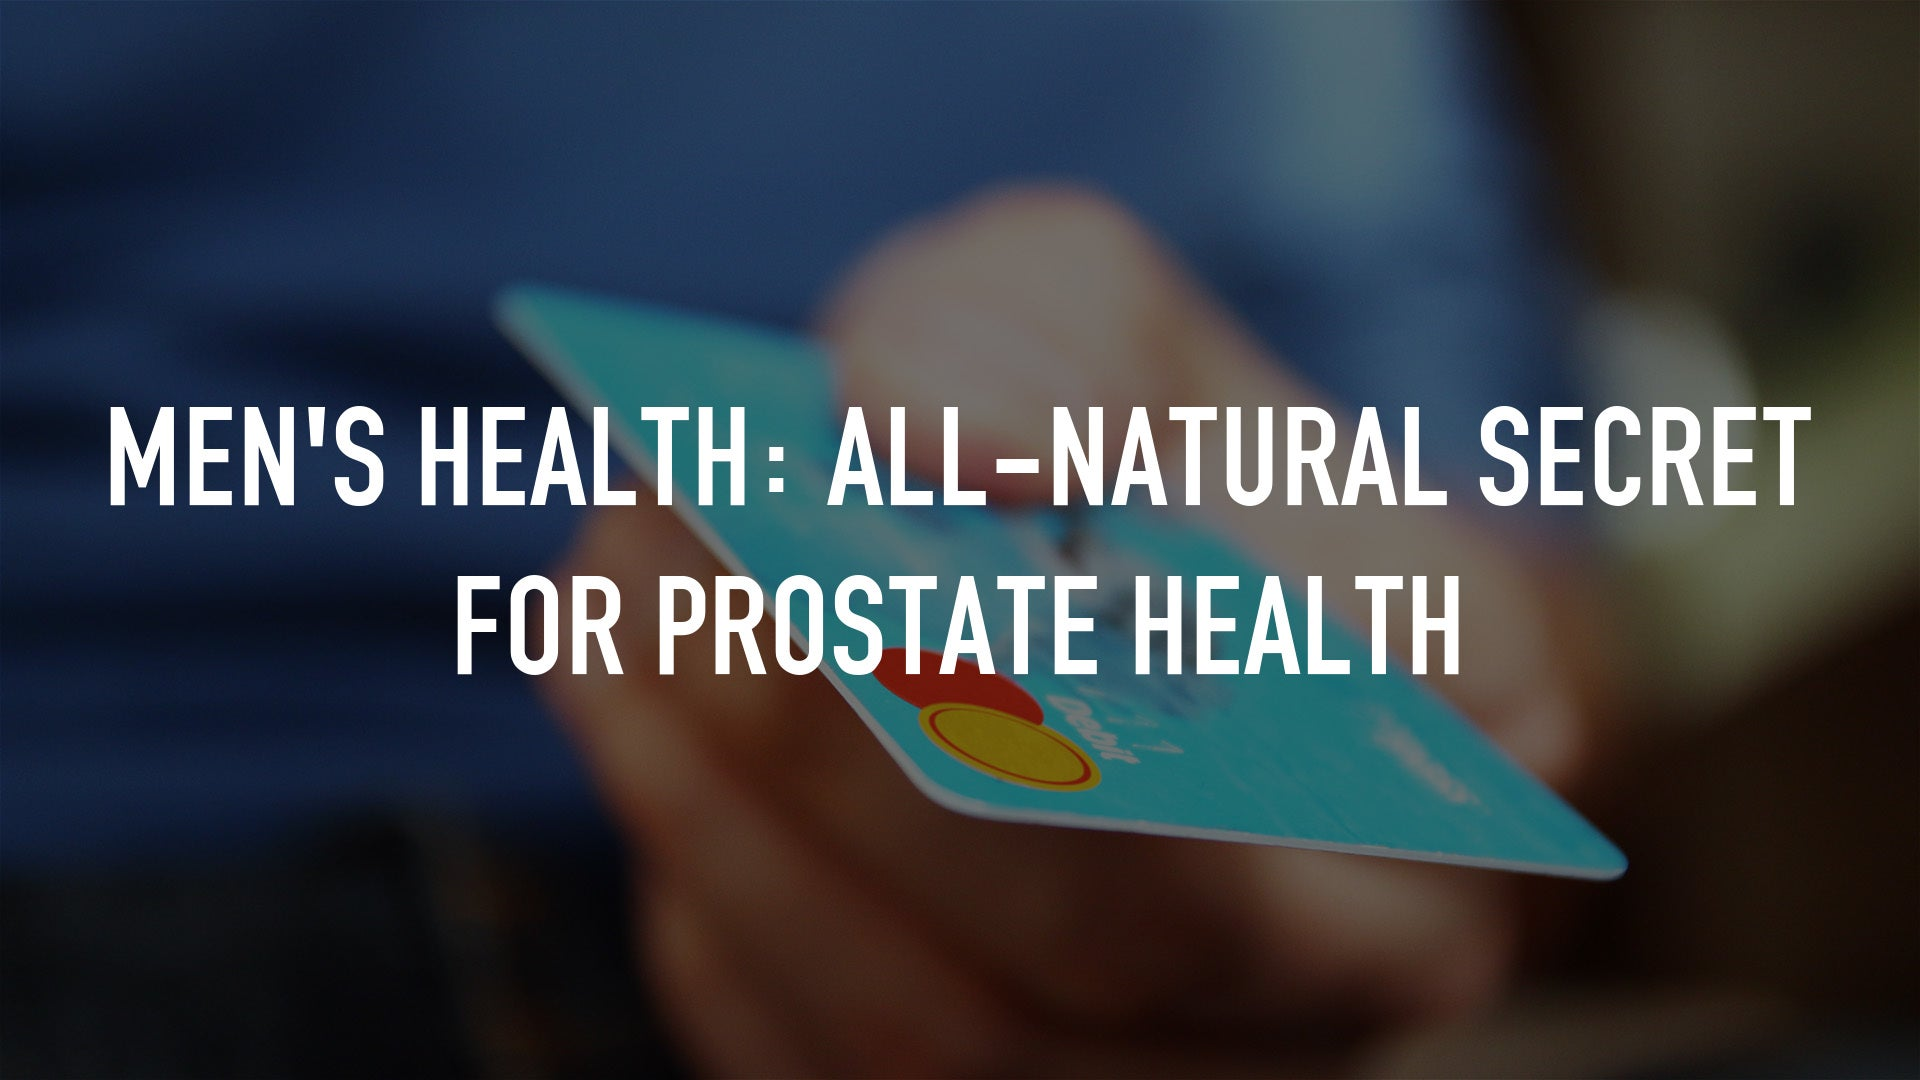 Men's Health: All-Natural Secret for Prostate Health